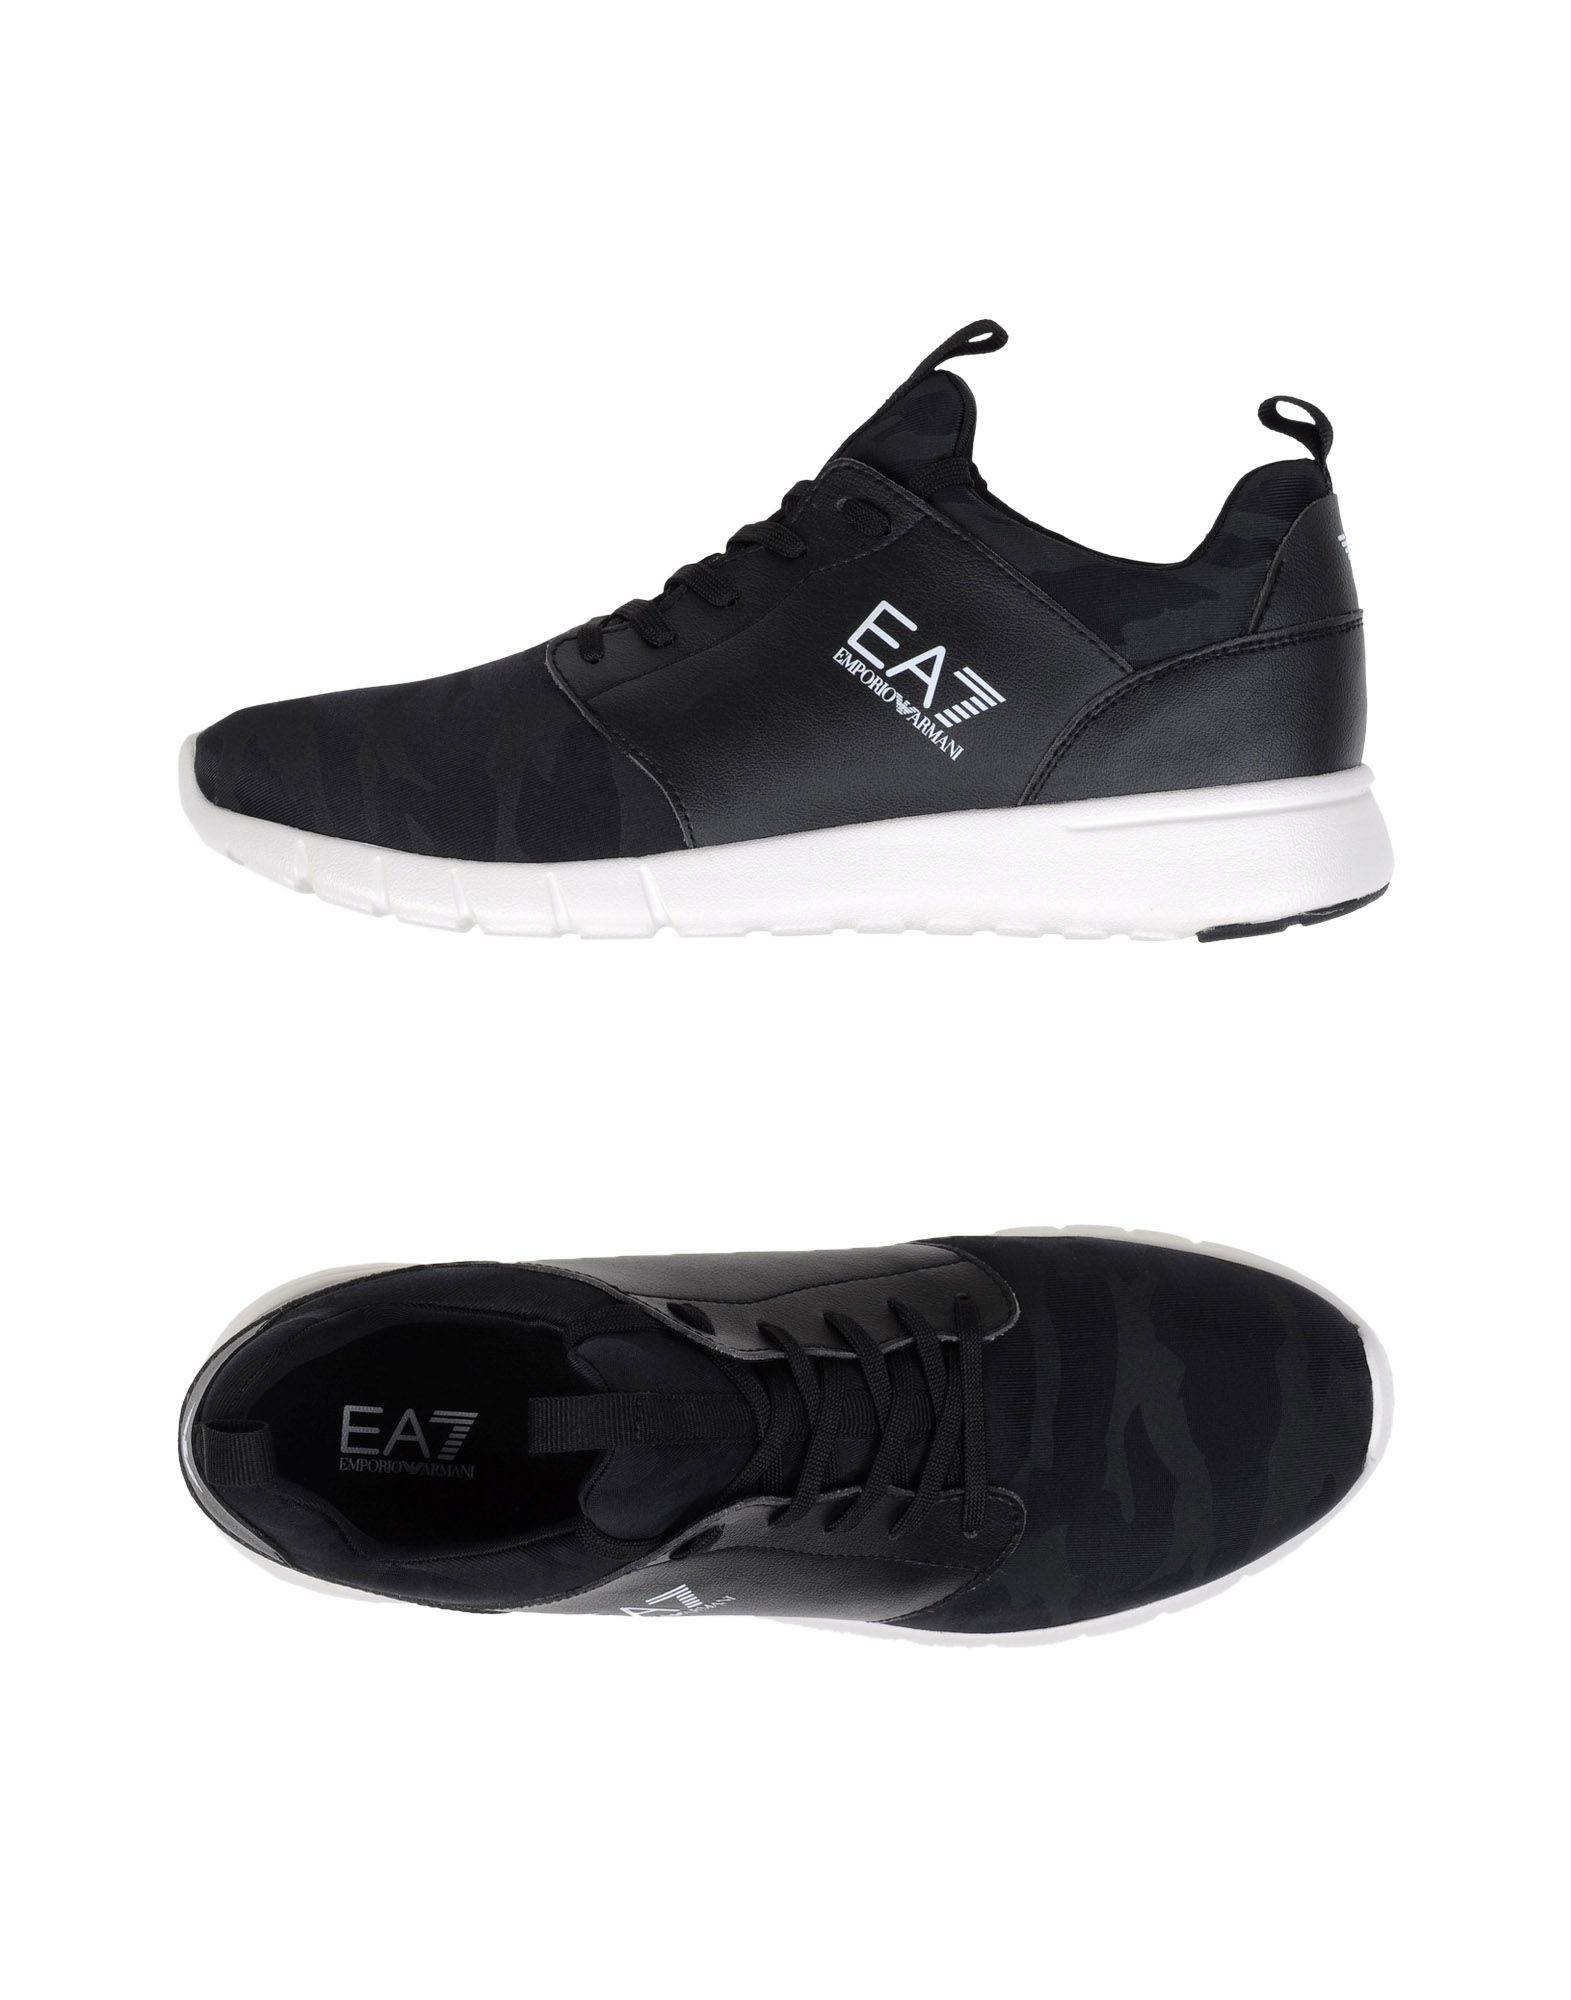 Sneakers Ea7 New Racer Stampa Camouflage M - Uomo - Acquista online su